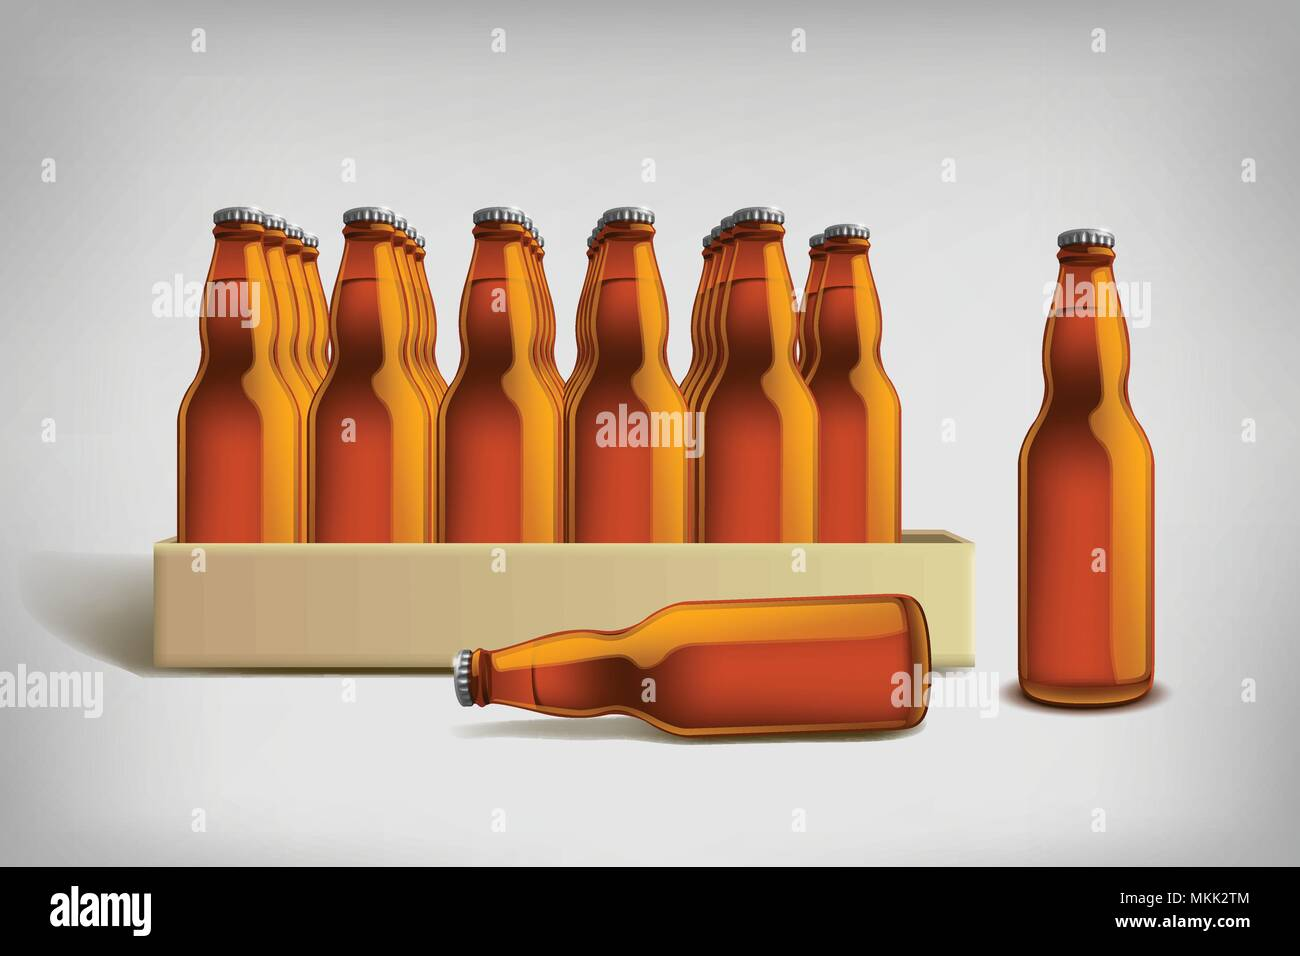 Case Of Beer Stock Photos Case Of Beer Stock Images Alamy